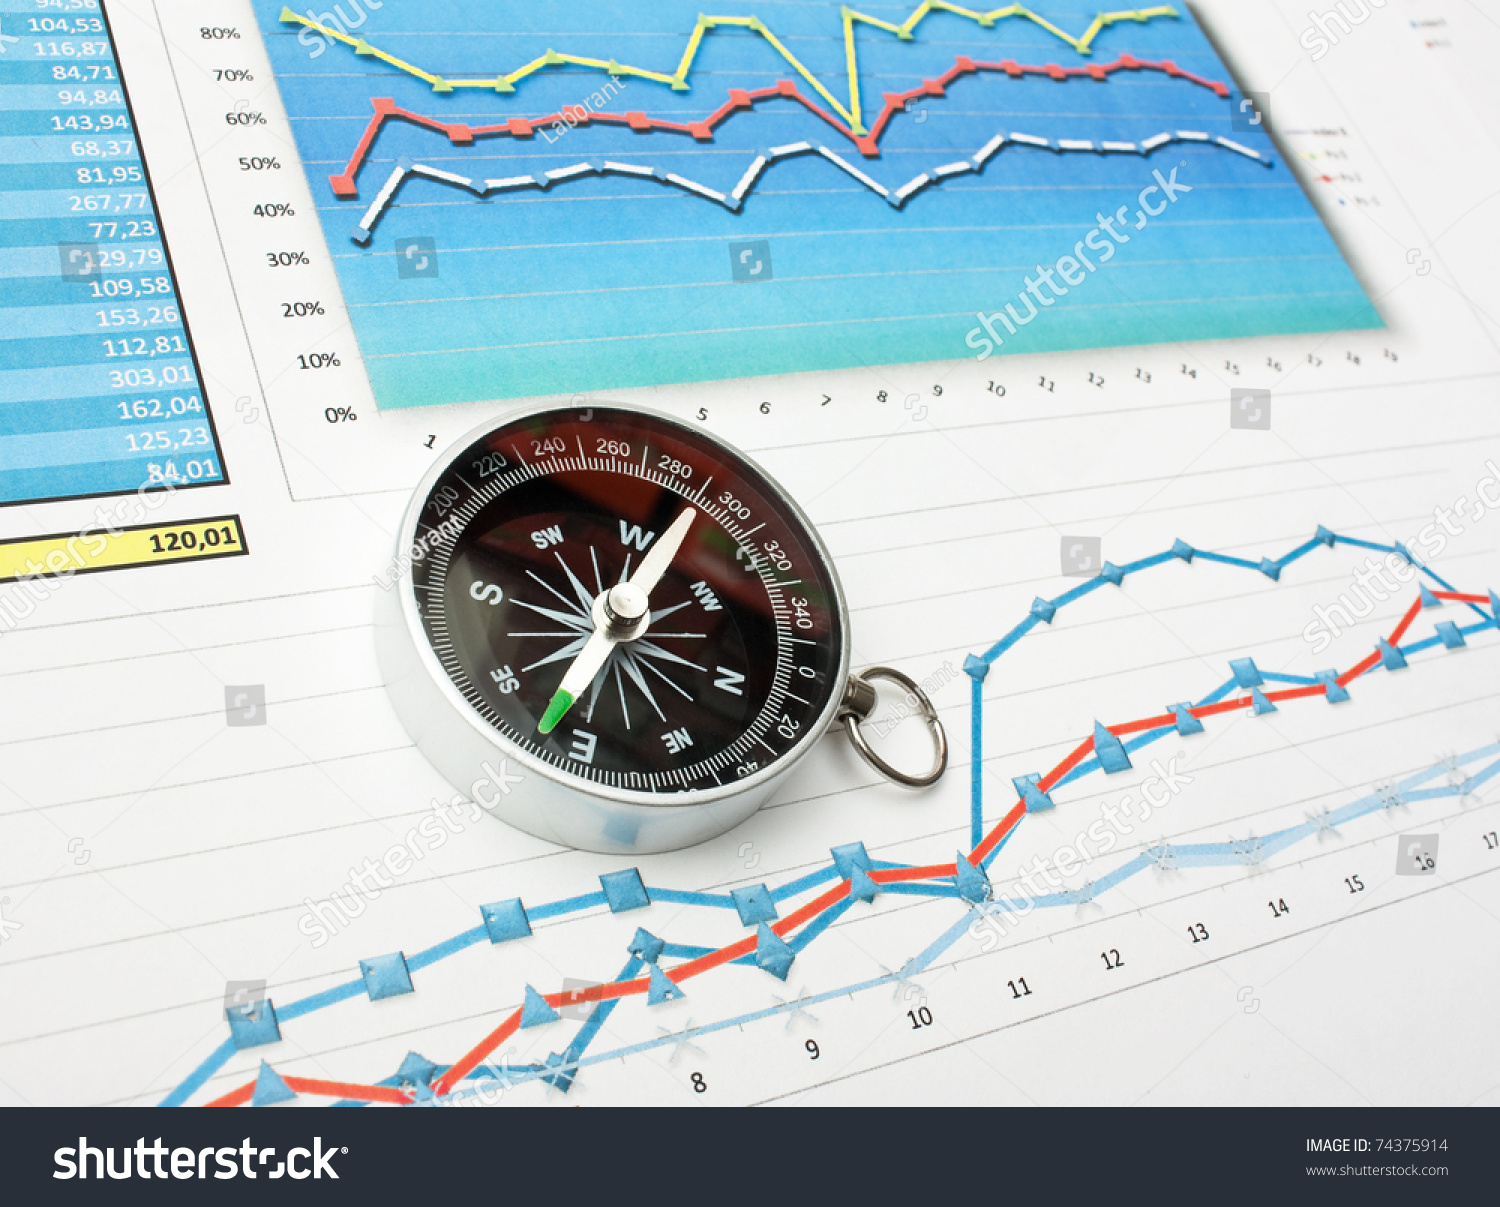 Compass on paper work diagram stock photo 74375914 shutterstock compass on paper work with diagram pooptronica